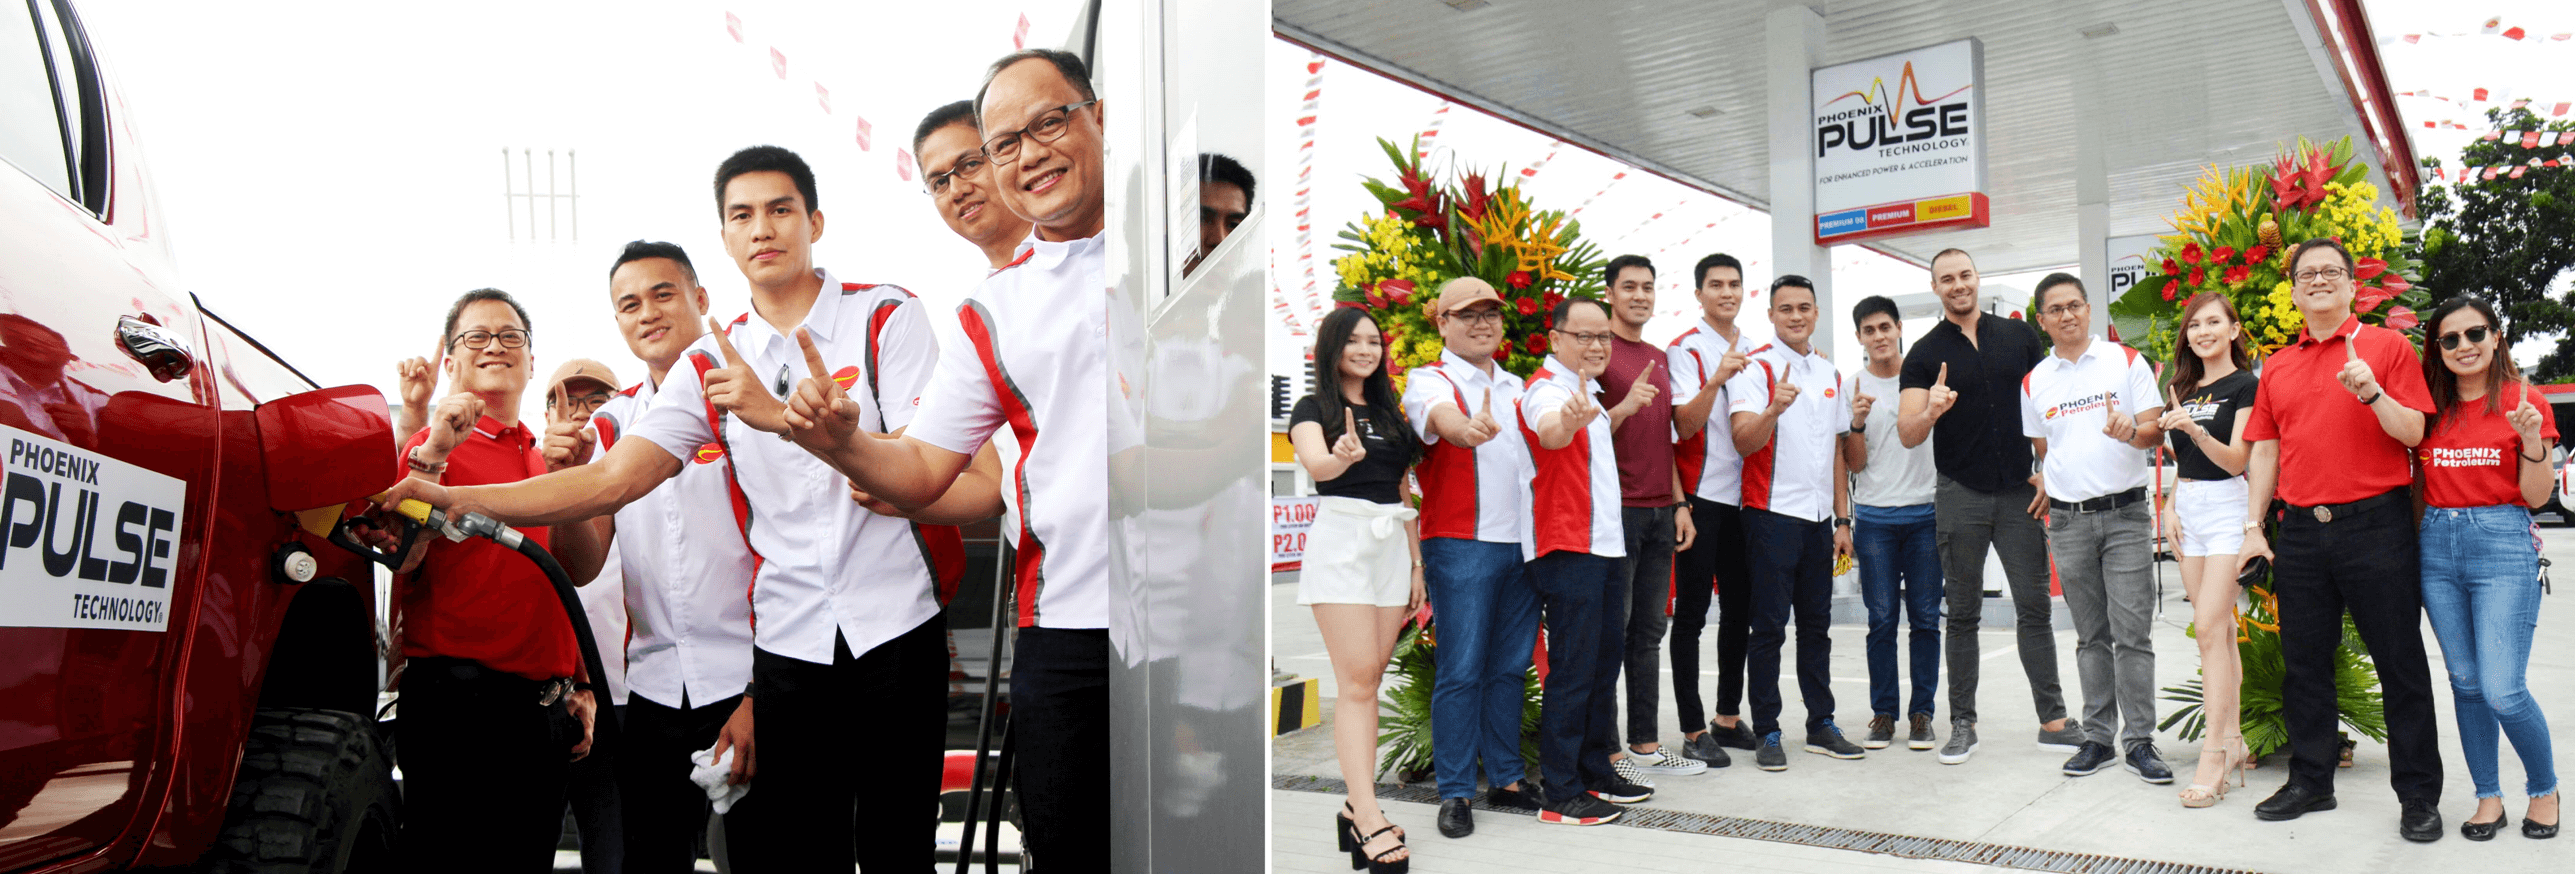 Phoenix Fuel Master JC Intal plays in new arena - gas station business